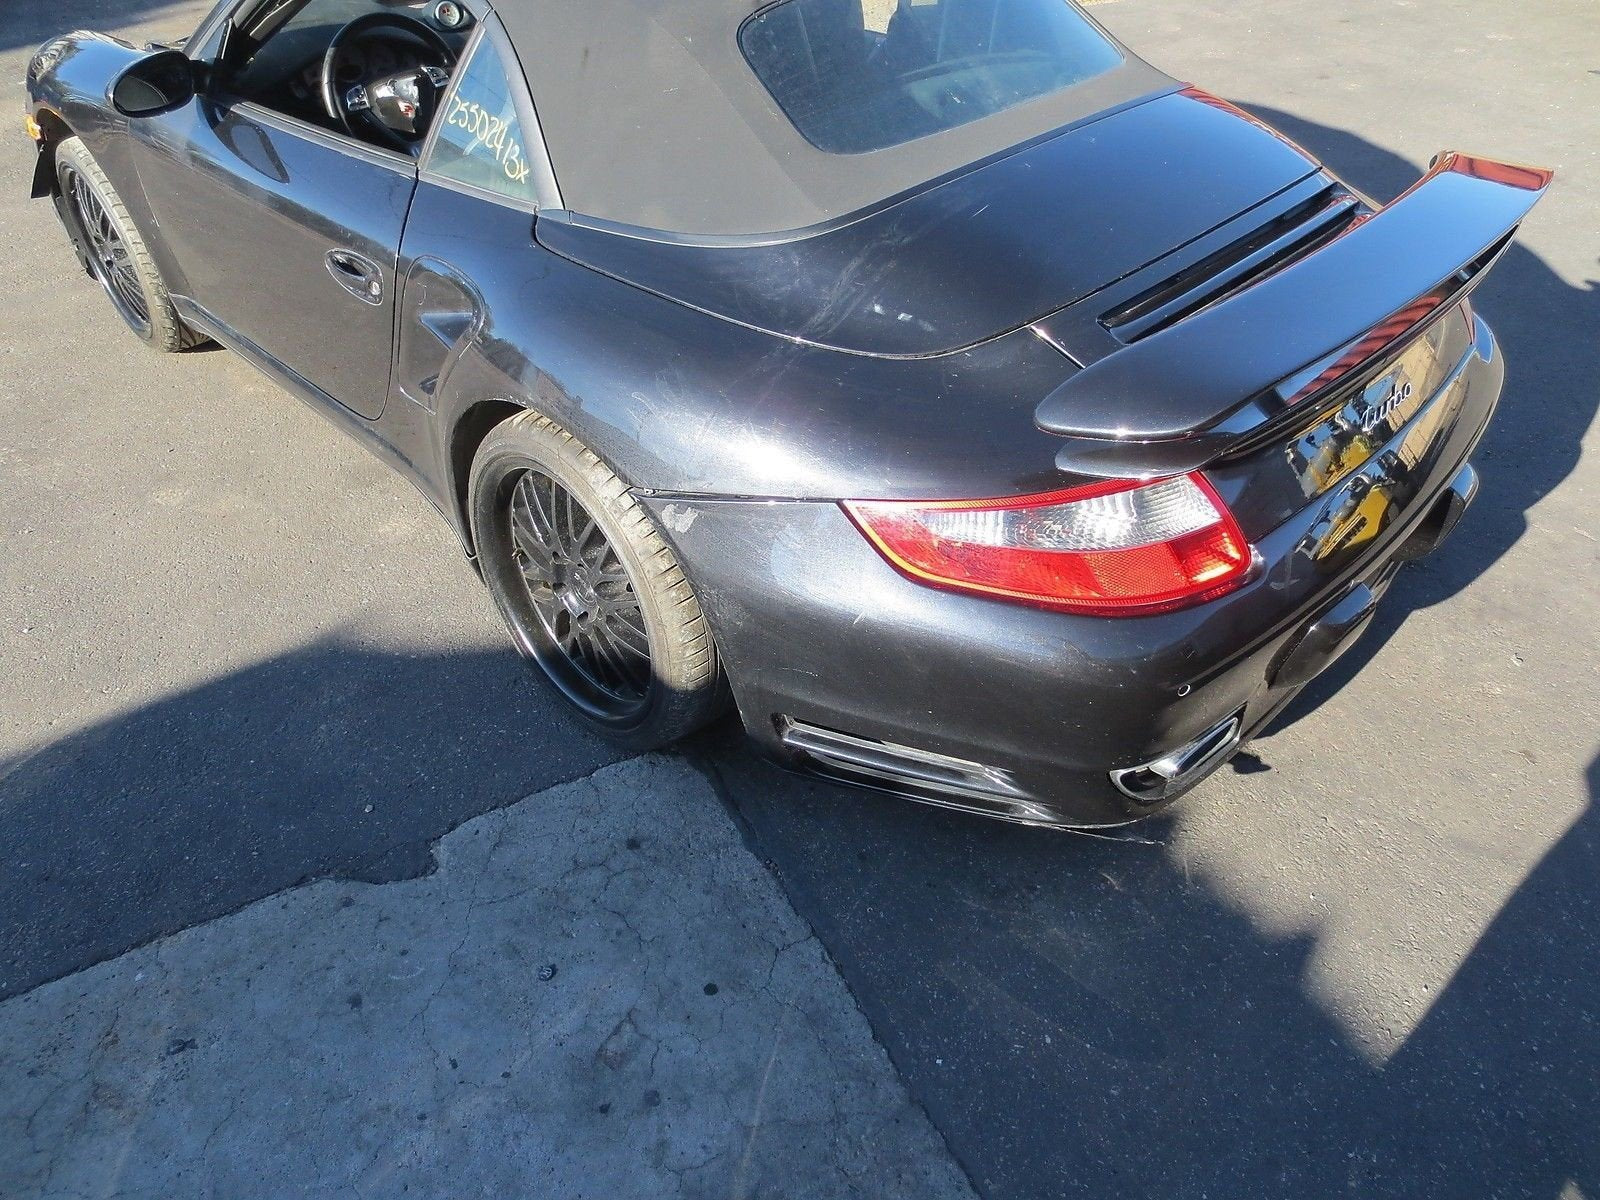 08 Porsche 911 Carrera Convertible TURBO 997 Parting Out car parts part 14,509